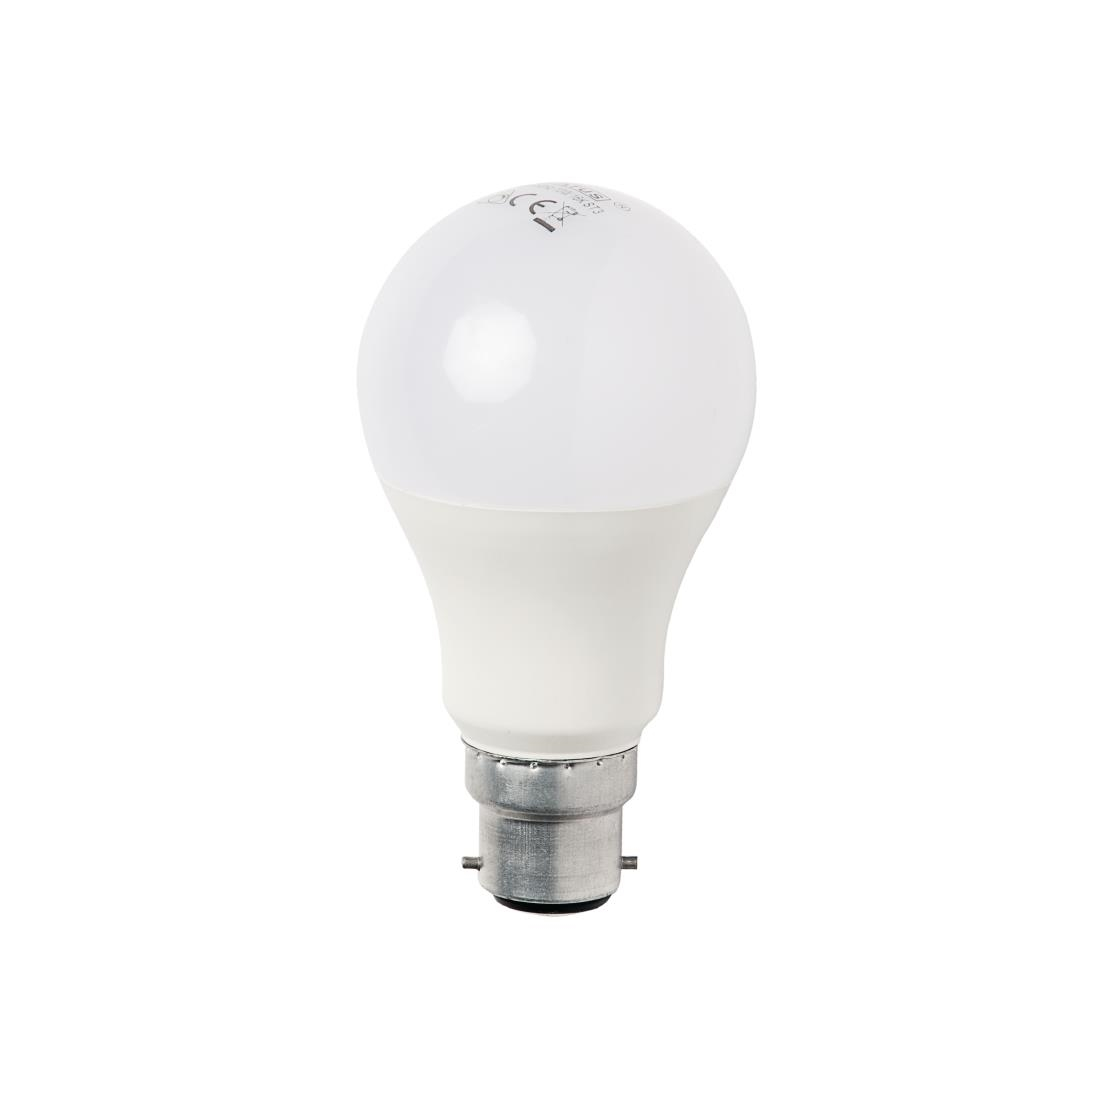 Status LED 10w BC Dimmable GLS Lamp